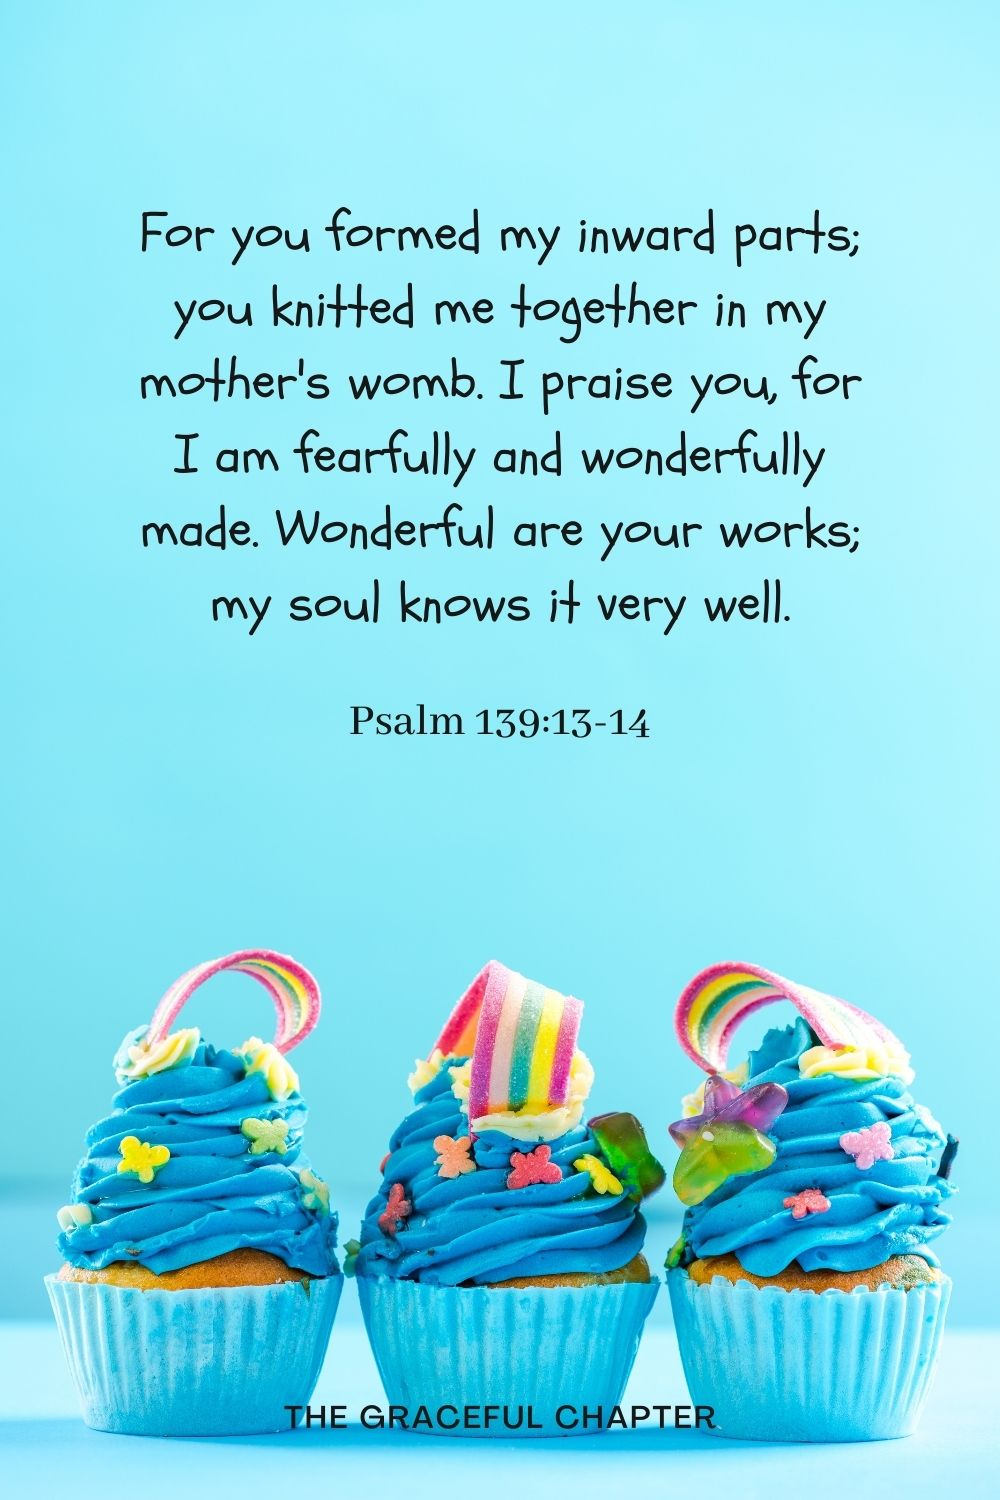 For you formed my inward parts; you knitted me together in my mother's womb.I praise you, for I am fearfully and wonderfully made. Wonderful are your works; my soul knows it very well. Psalm 139:13-14